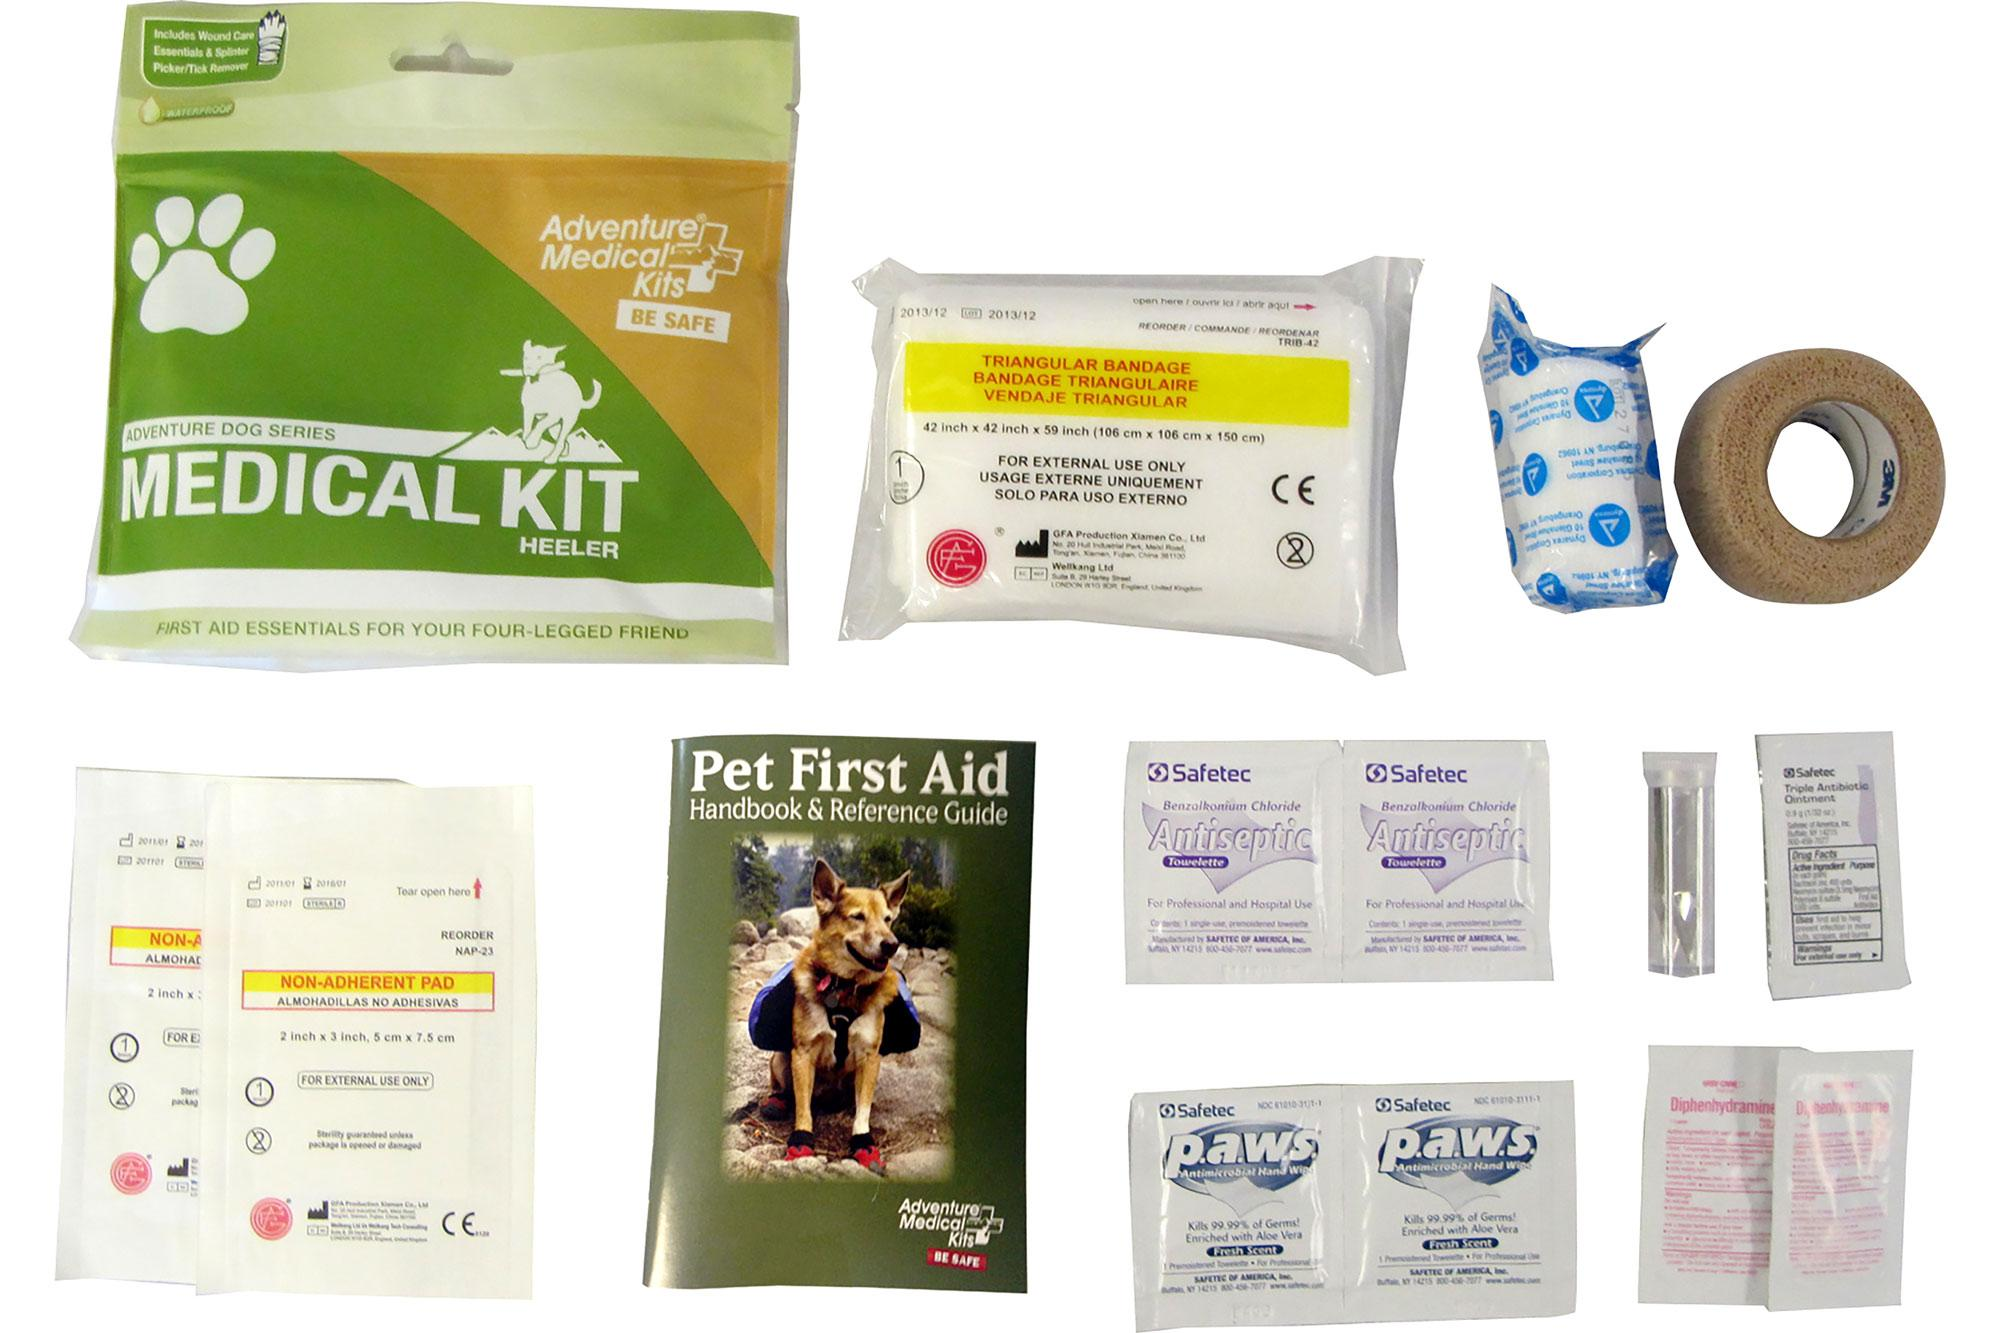 This medical kit has all the essentials for keeping your dog healthy